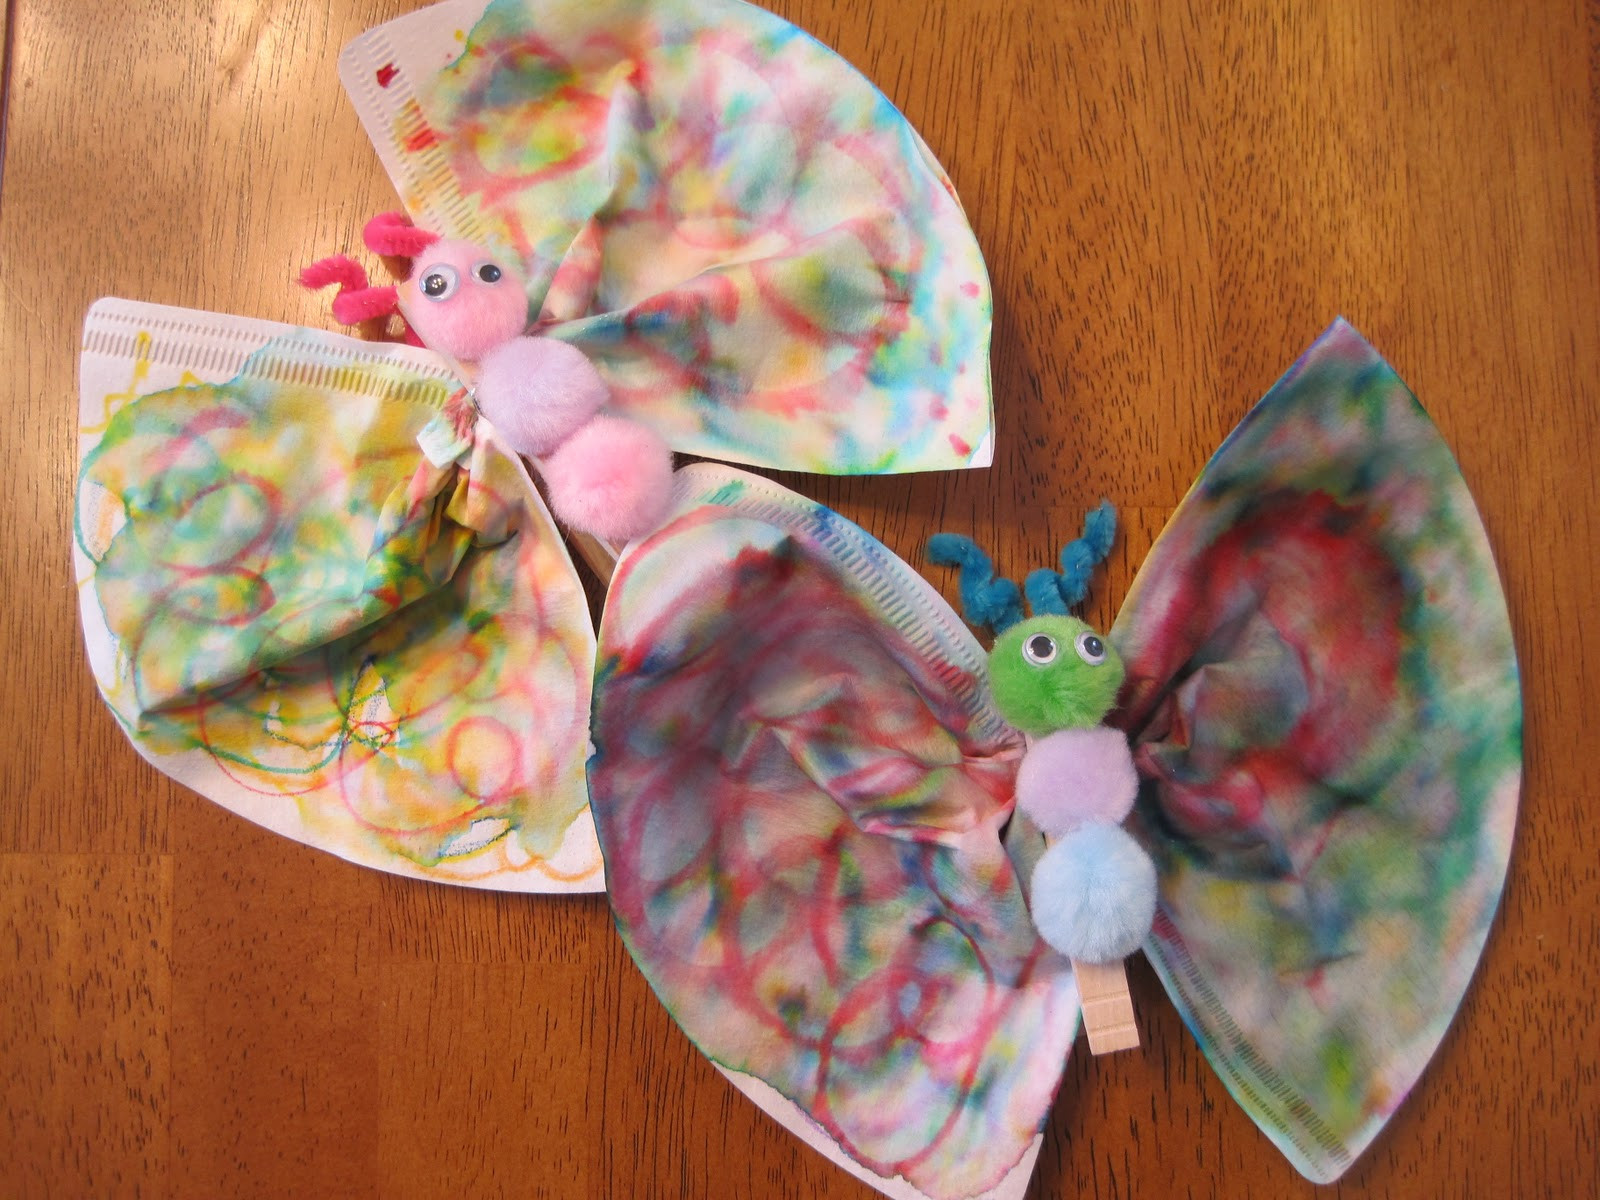 Best ideas about Spring Crafts For Preschoolers . Save or Pin Savvy Spending Easy Spring Craft for preschoolers Now.